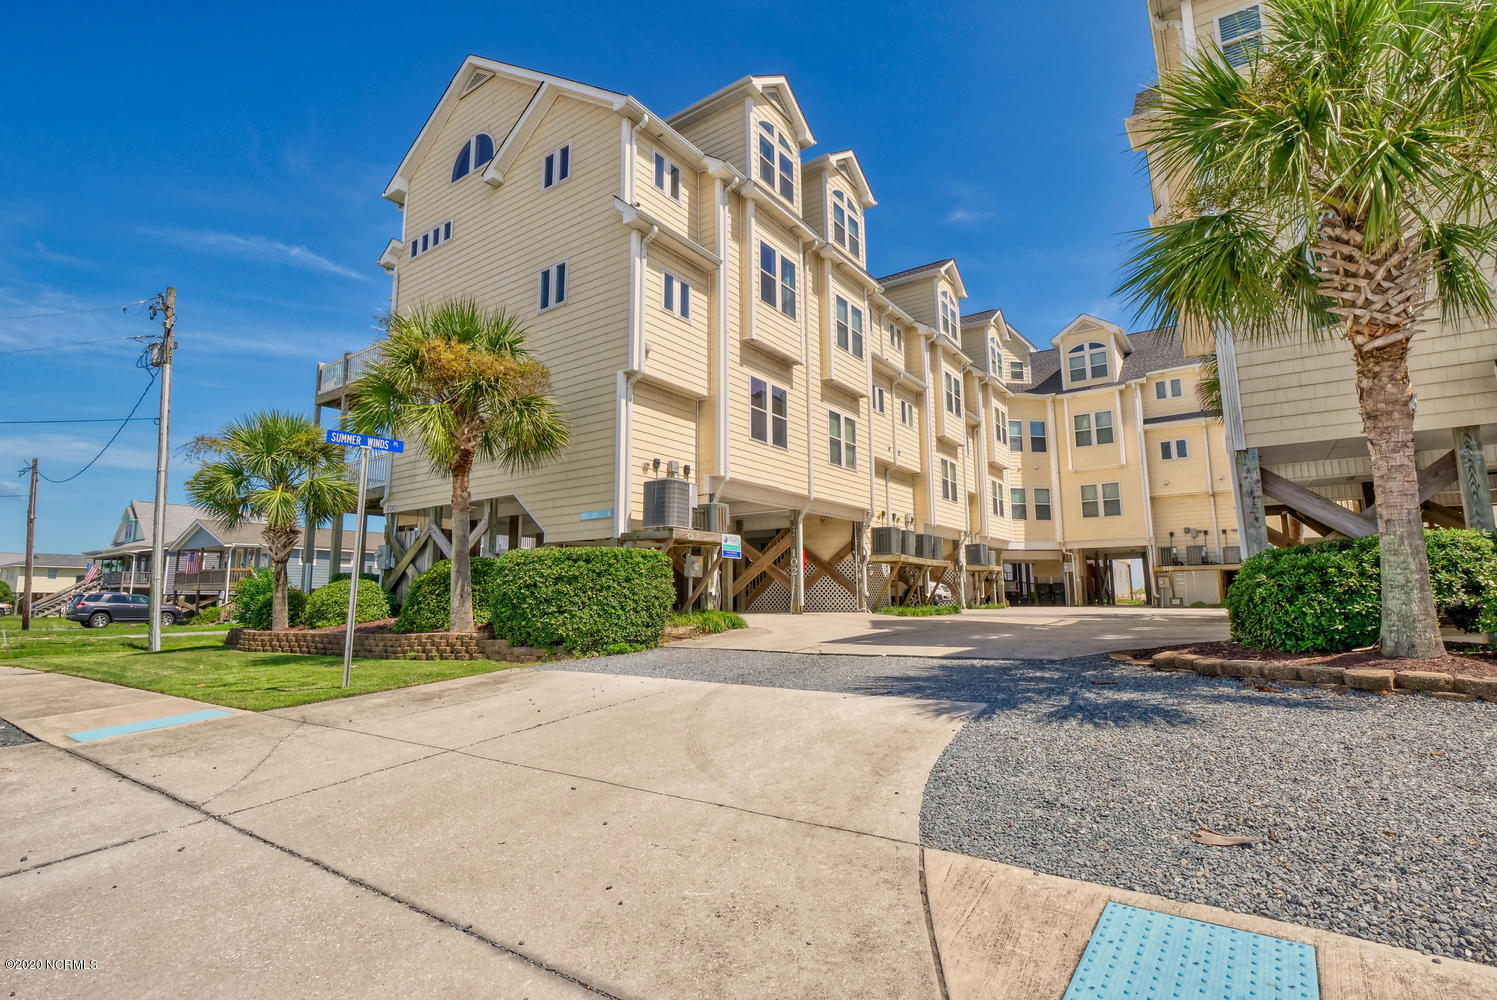 102 Summer Winds Place, Surf City, North Carolina 28445, 3 Bedrooms Bedrooms, ,3 BathroomsBathrooms,Residential,For Sale,Summer Winds,100232574